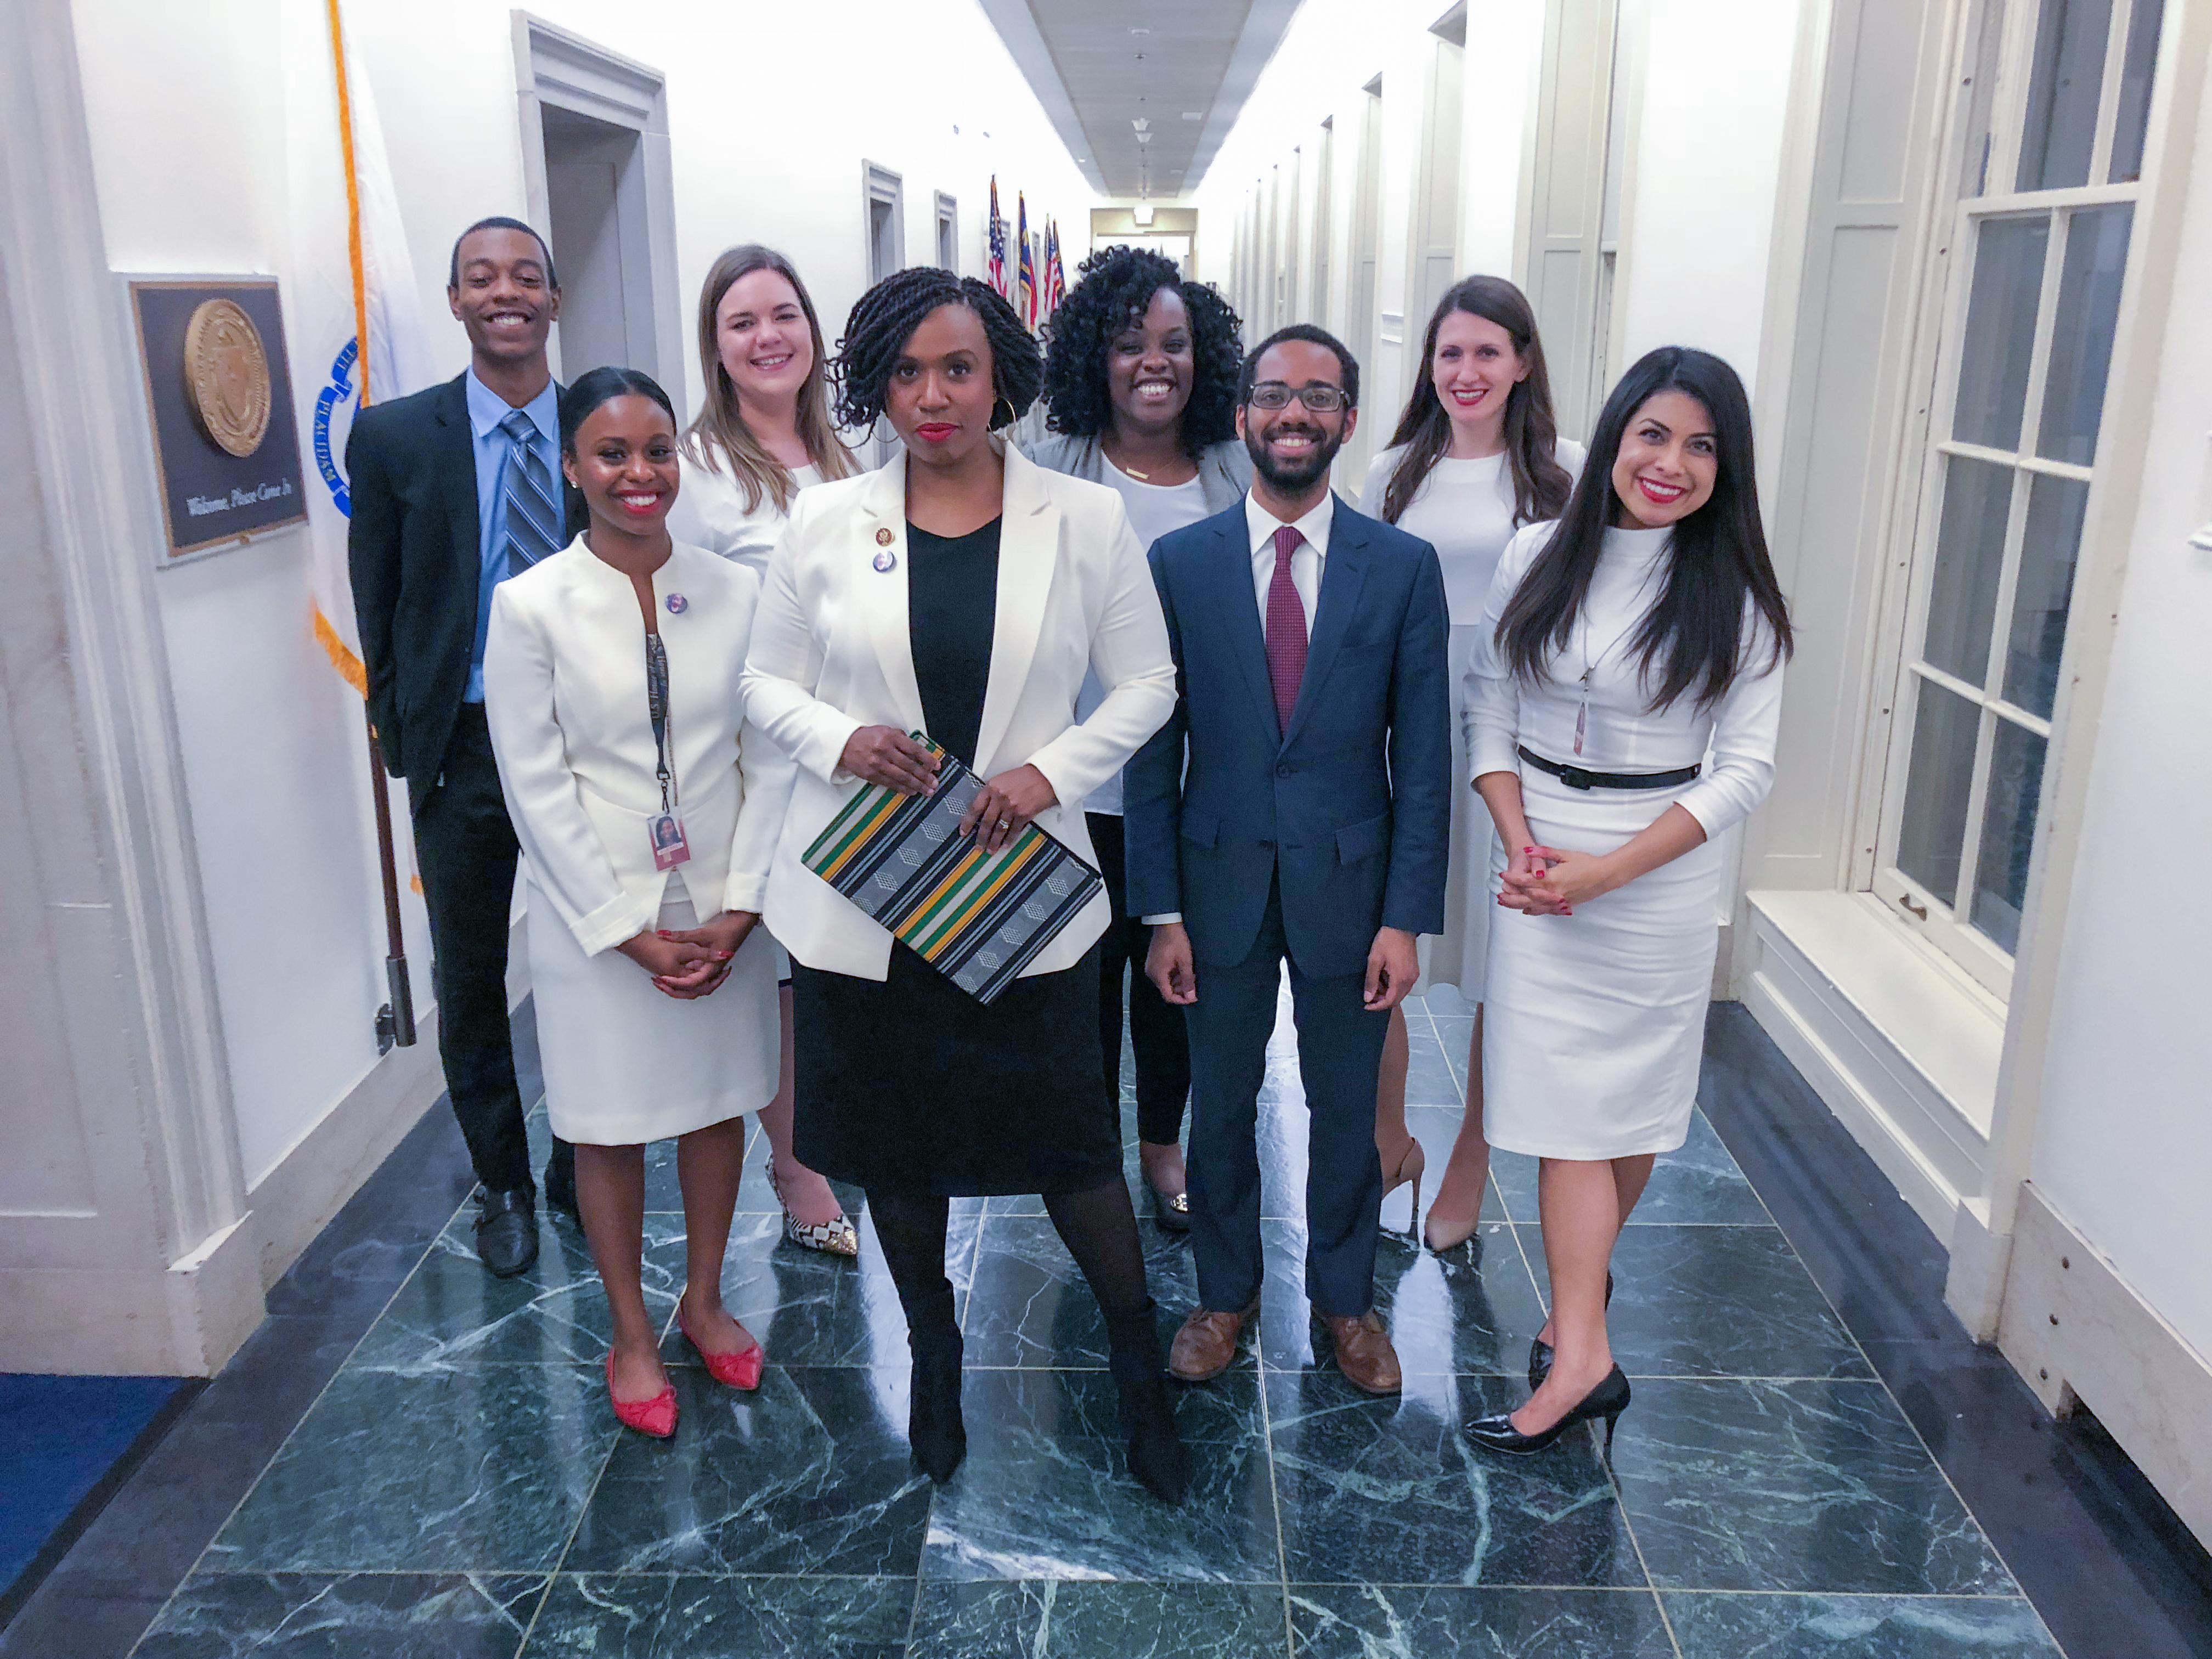 Congresswoman Pressley and her staff before the 2019 State of the Union address.